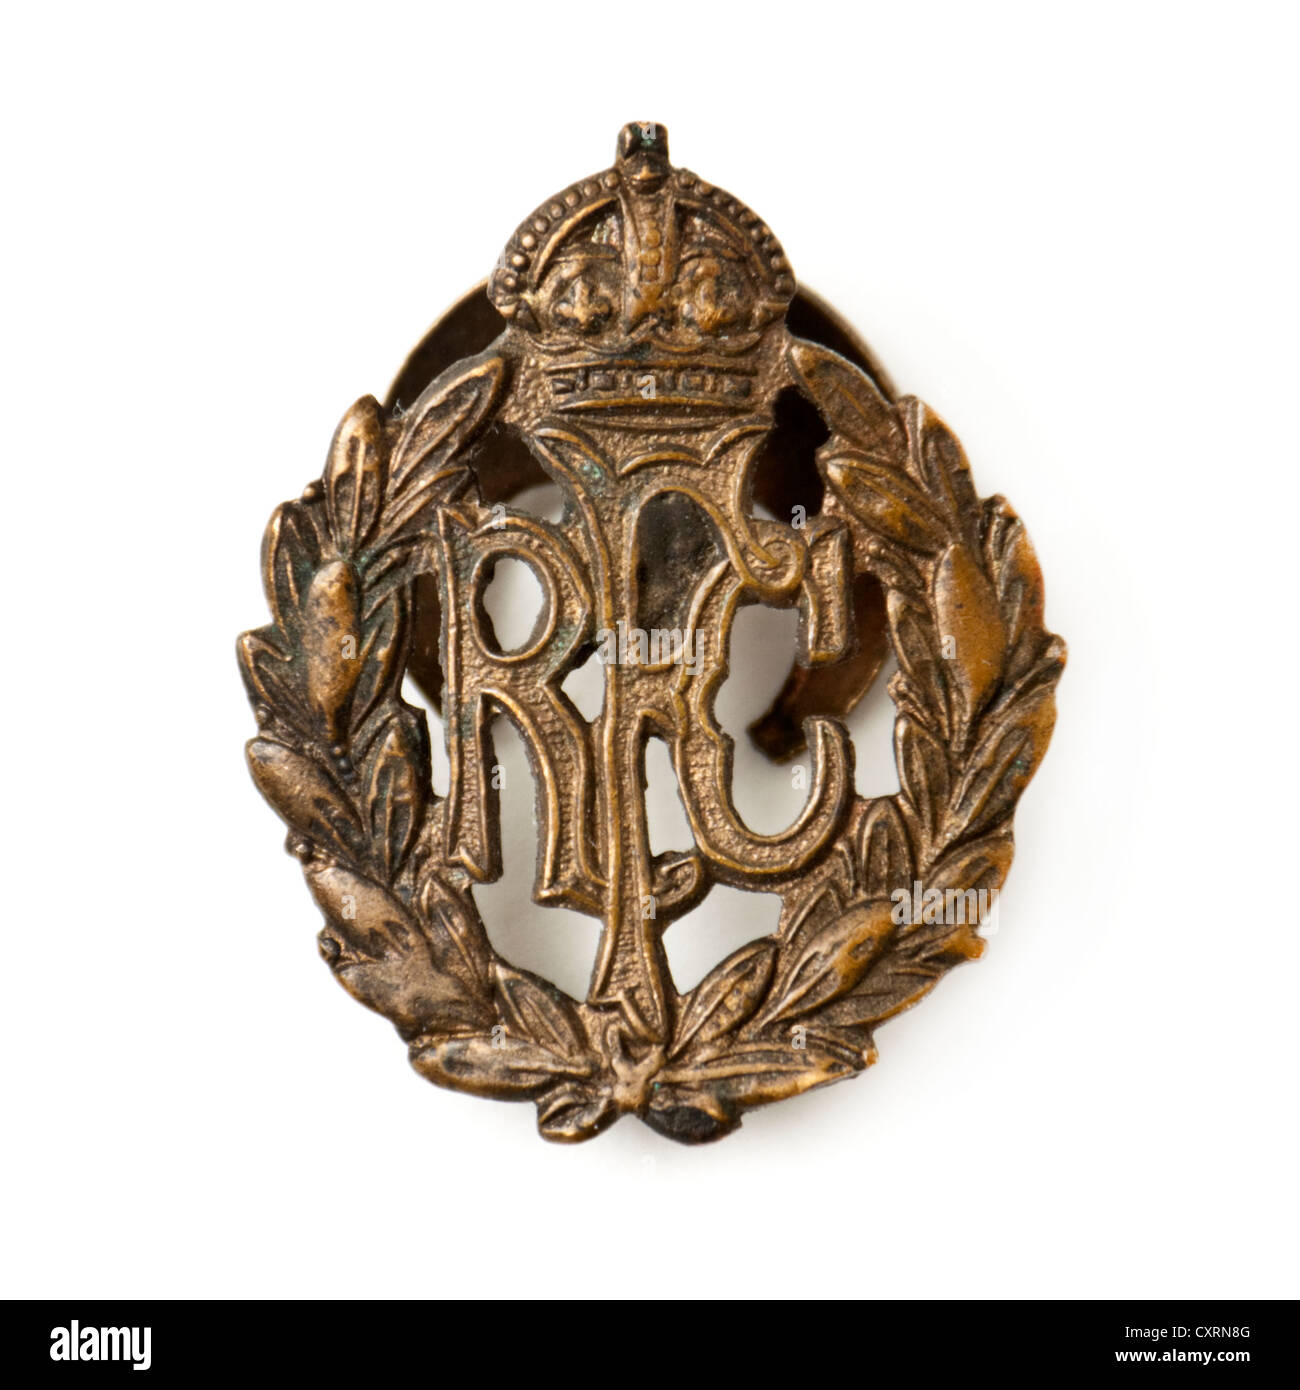 WW1 Royal Flying Corps (RFC) brass badge. The Royal Flying Corps was the air arm of the British Army during World - Stock Image